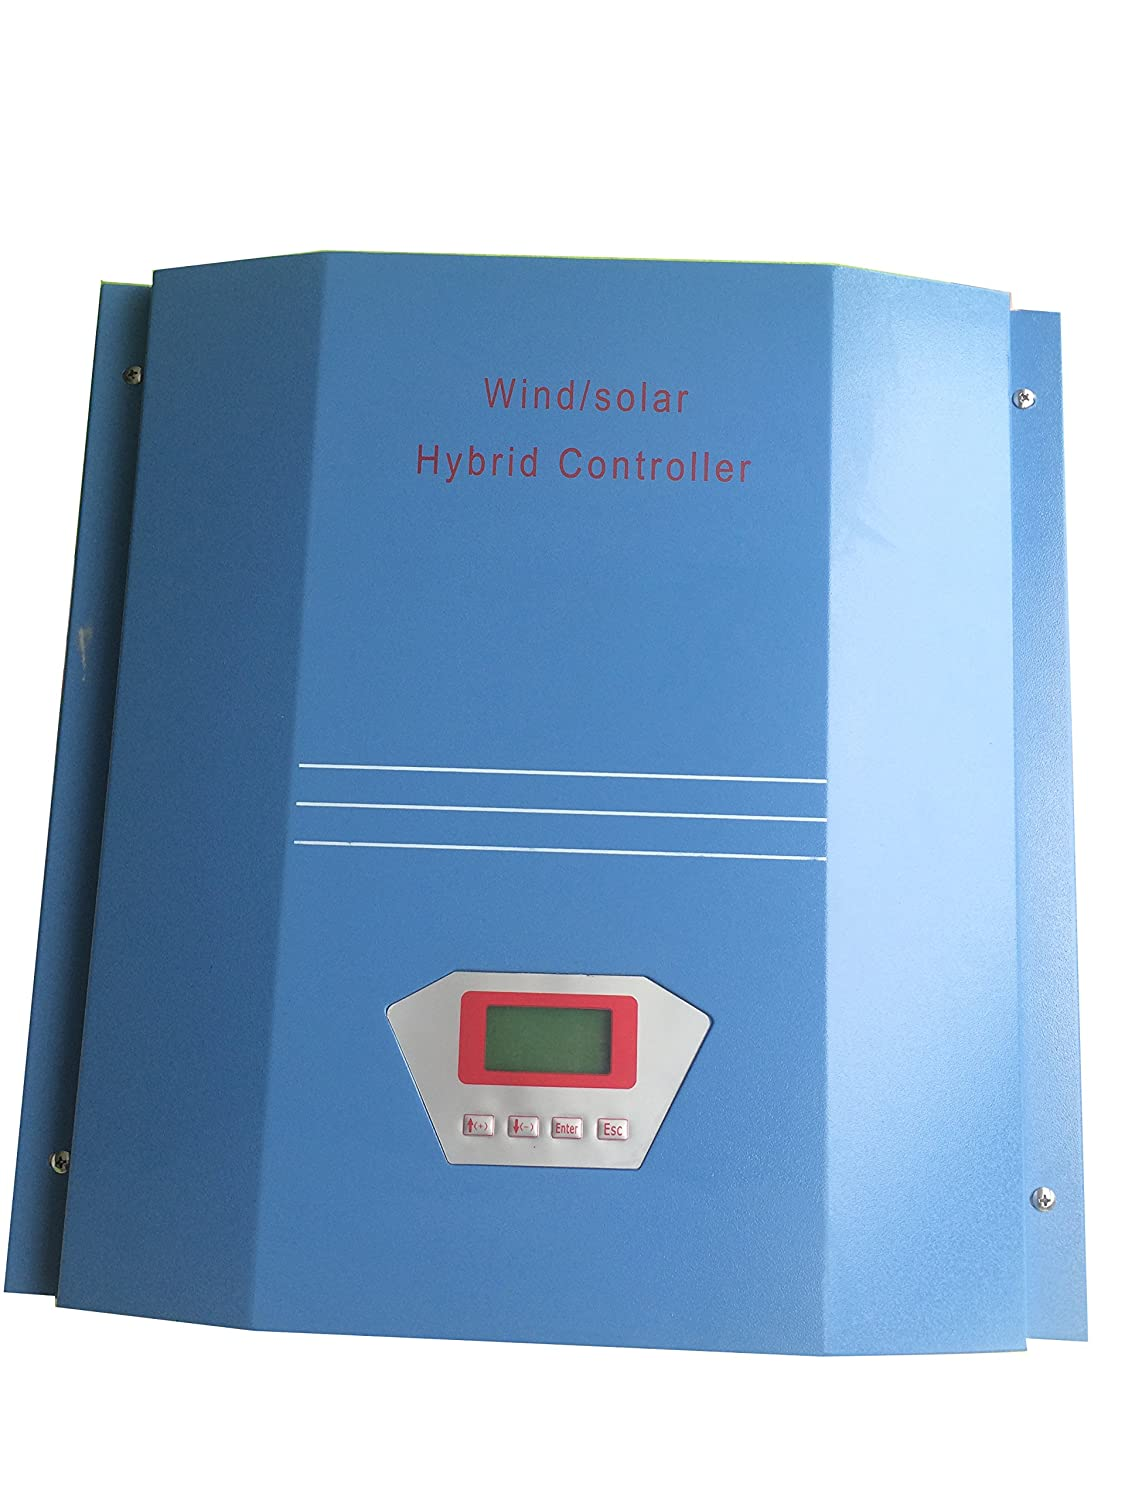 Tumo Int 3000w 48v Wind And Solar Hybrid Controller Turbine Dumpload Charge With Seperate Dump Load Garden Outdoor